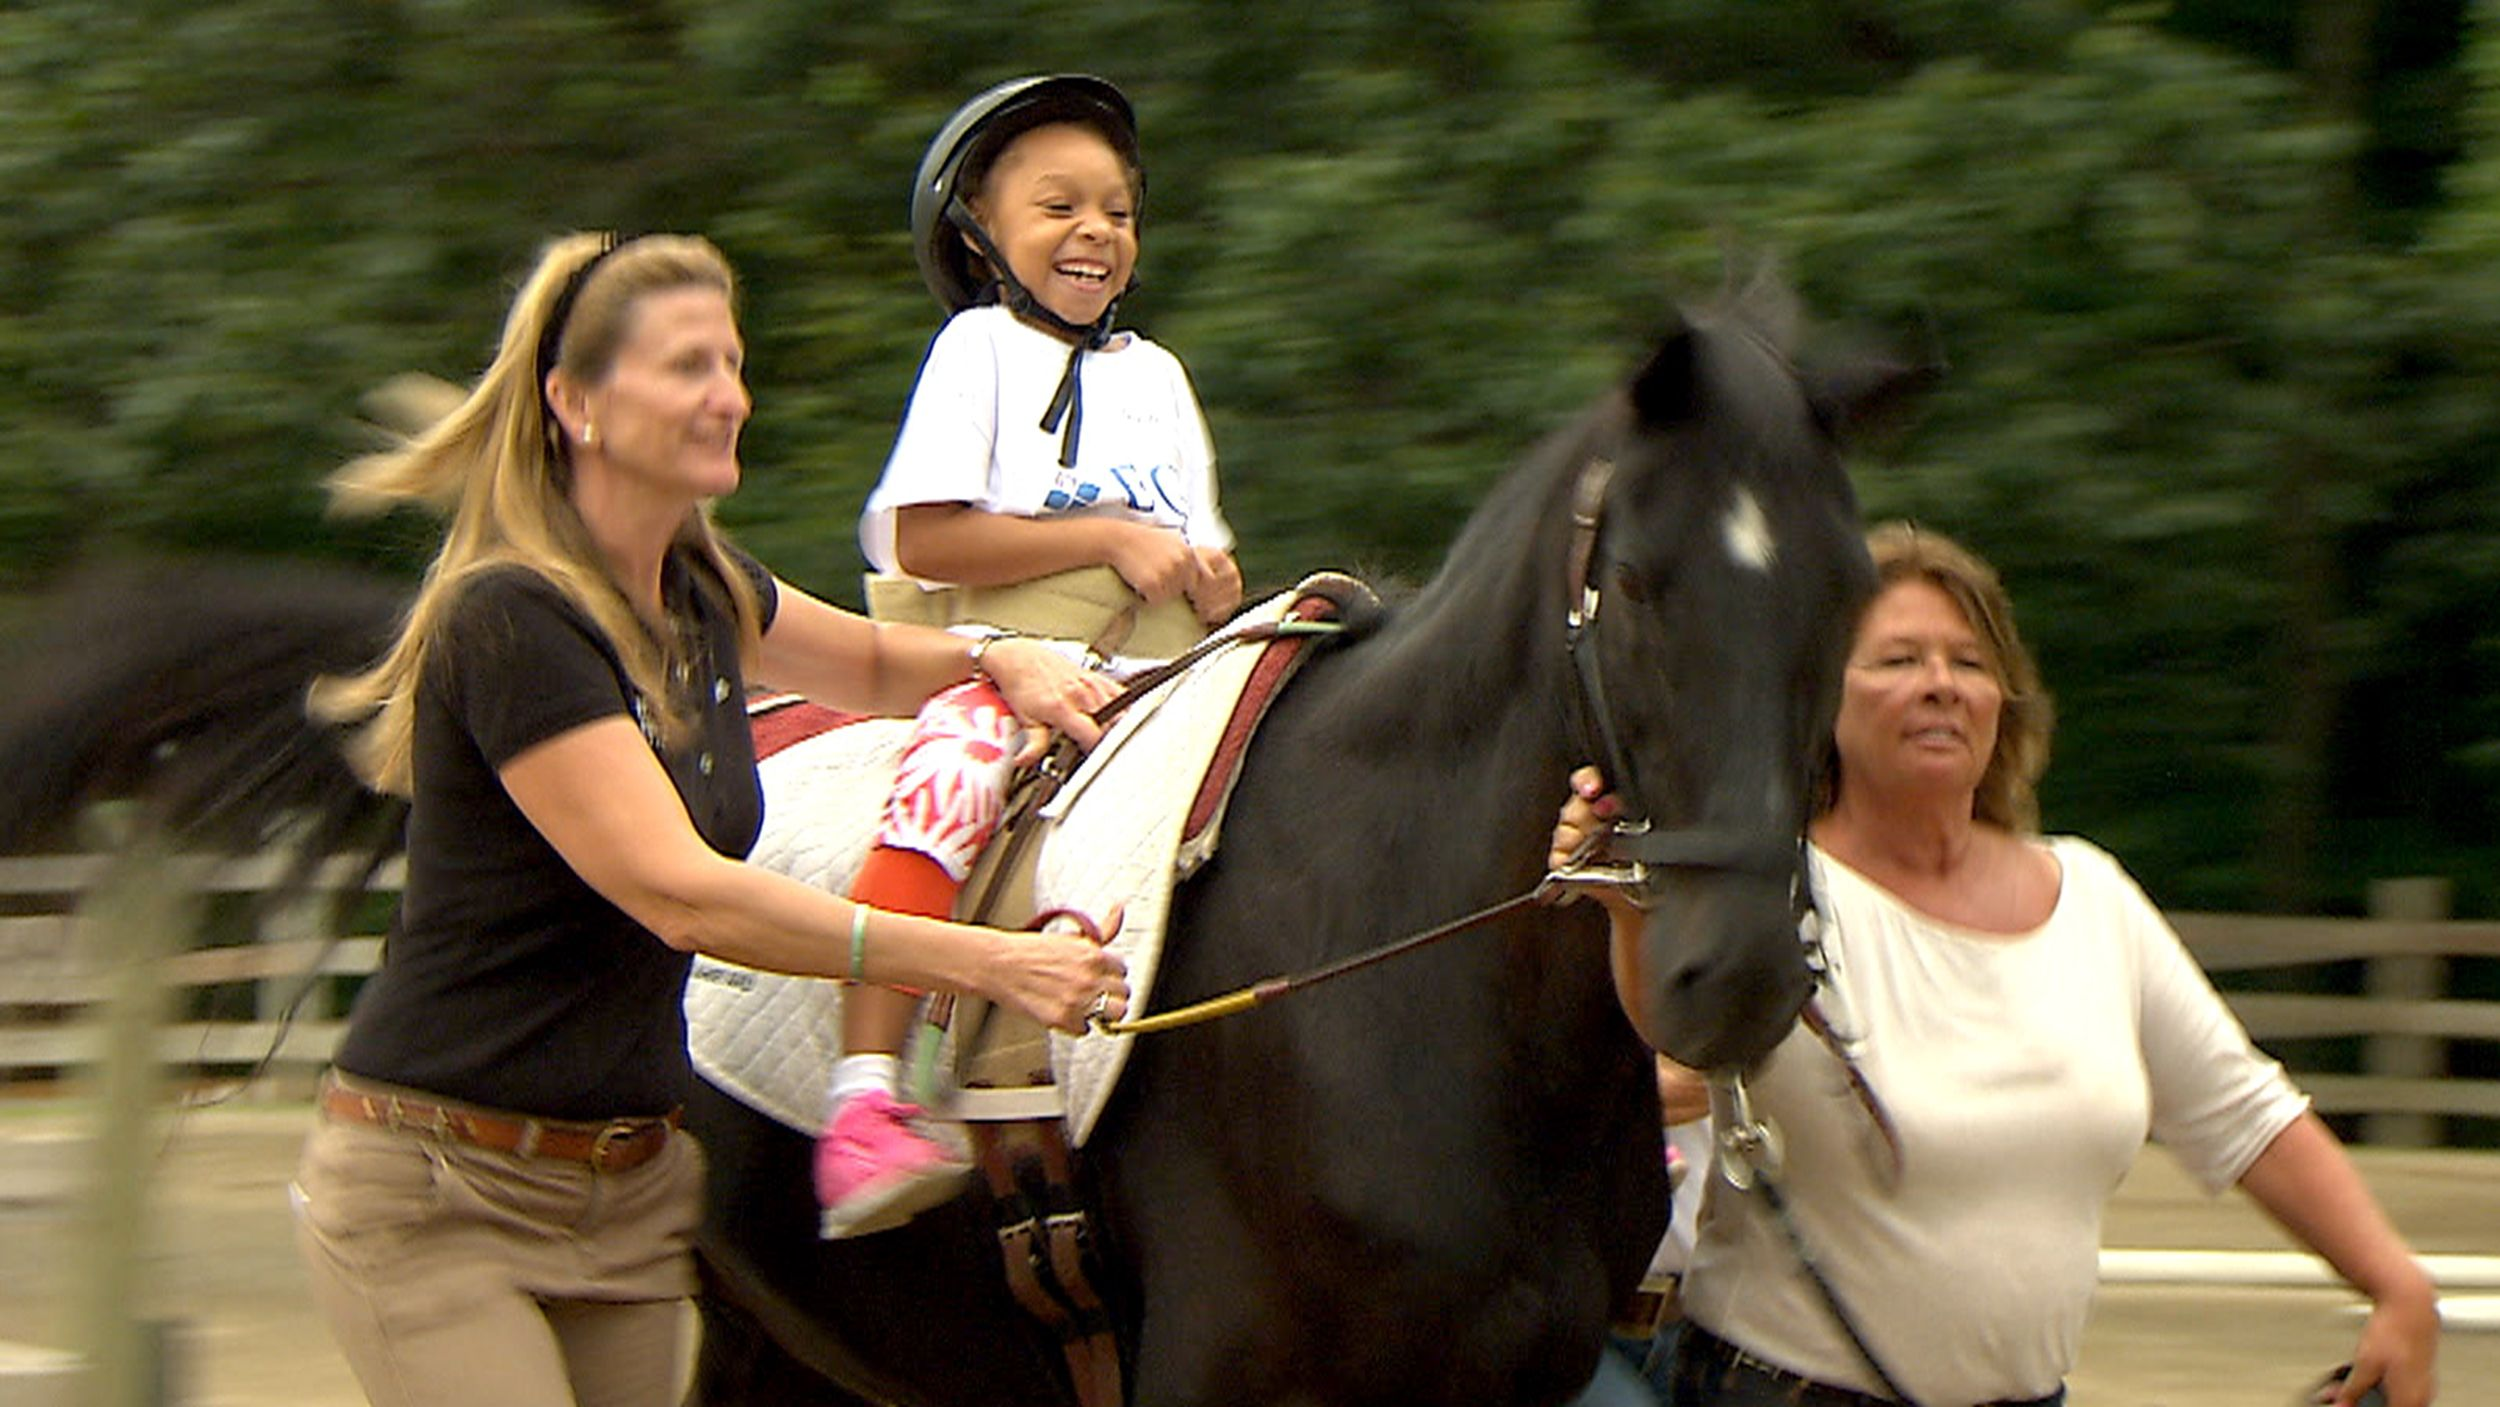 See how horses help kids with special needs find joy